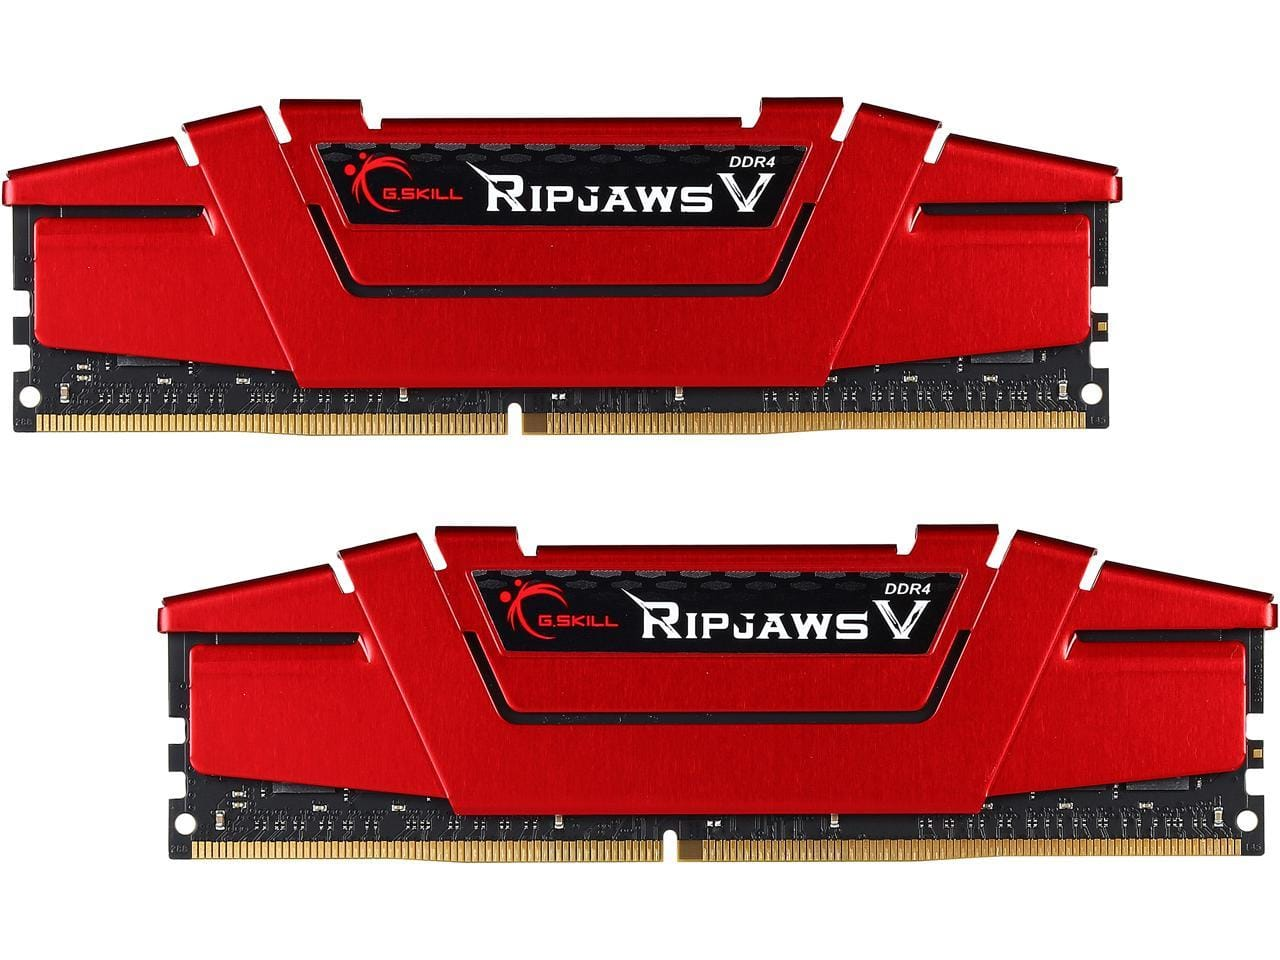 32GB (2x16GB) G.SKILL Ripjaws V Series DDR4 3200 Desktop Memory